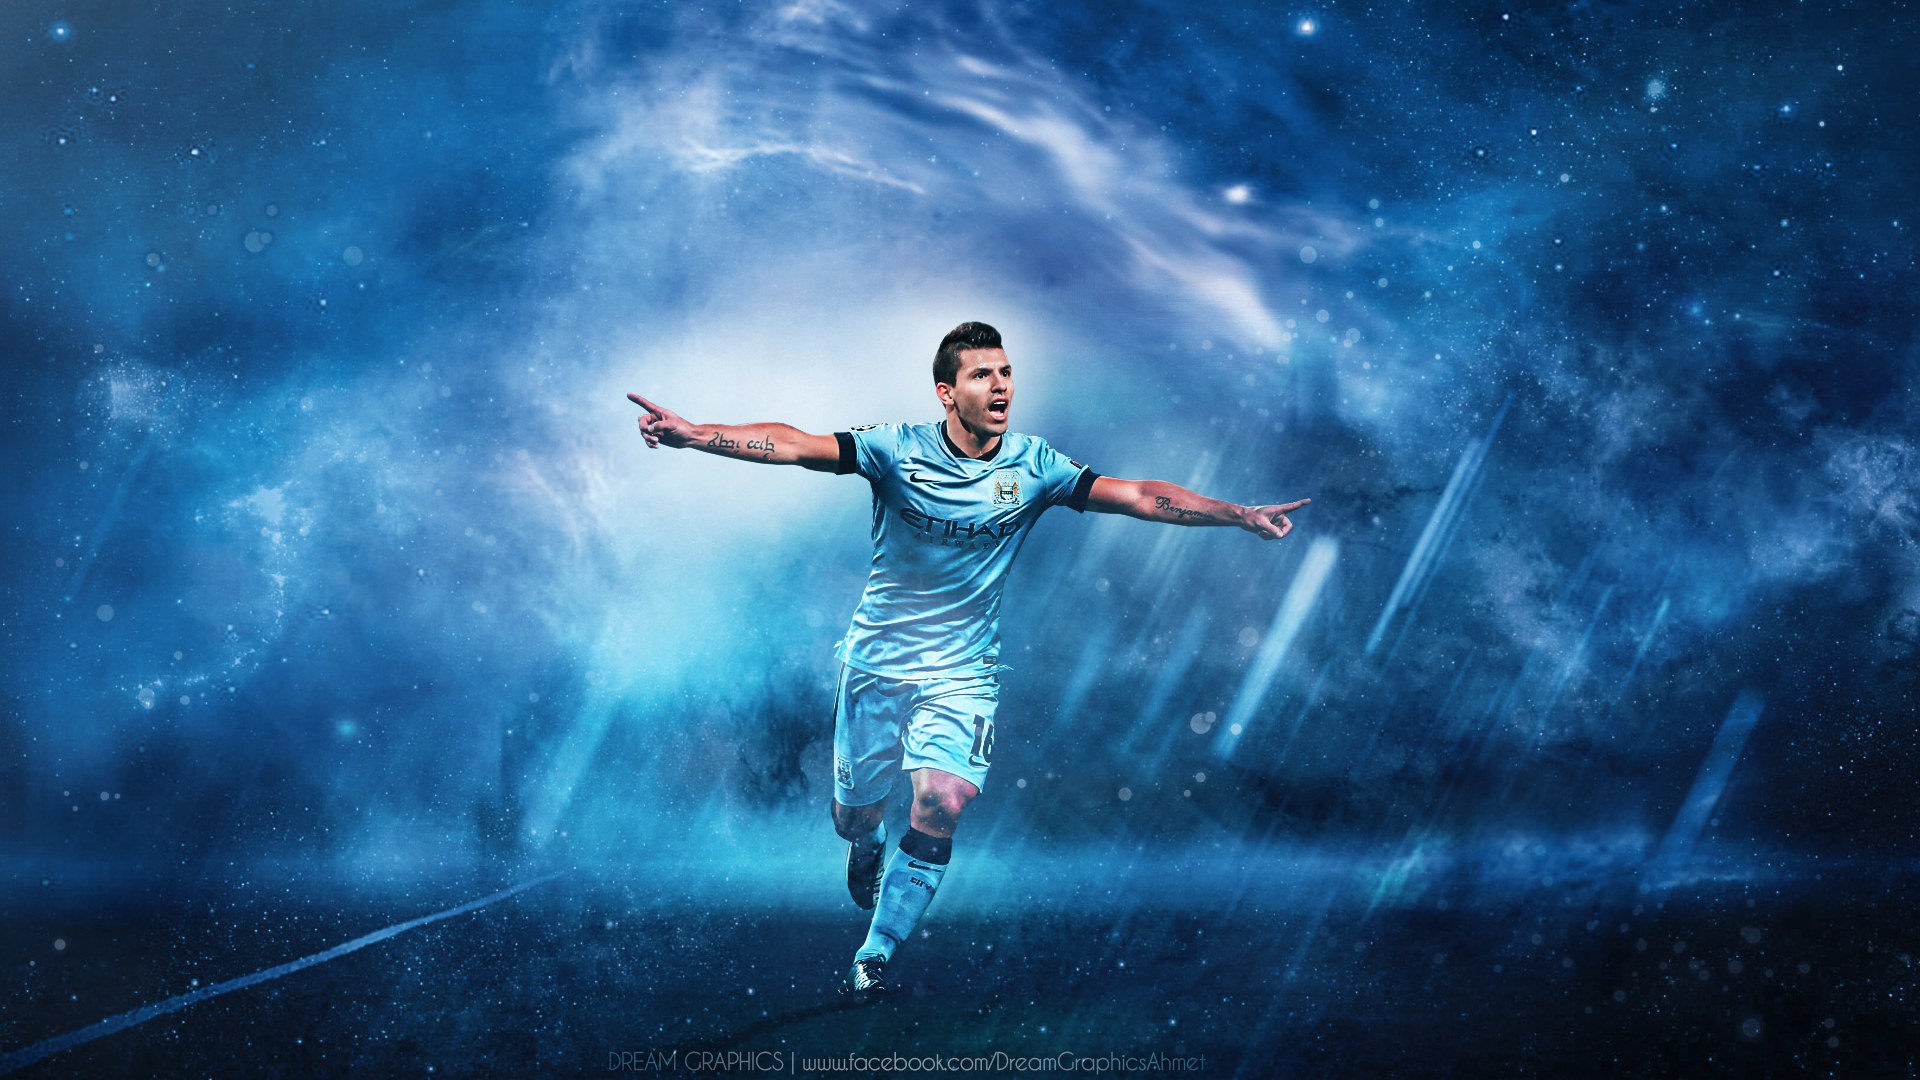 Sergio Agüero Hd Wallpaper Background Image 1920x1080